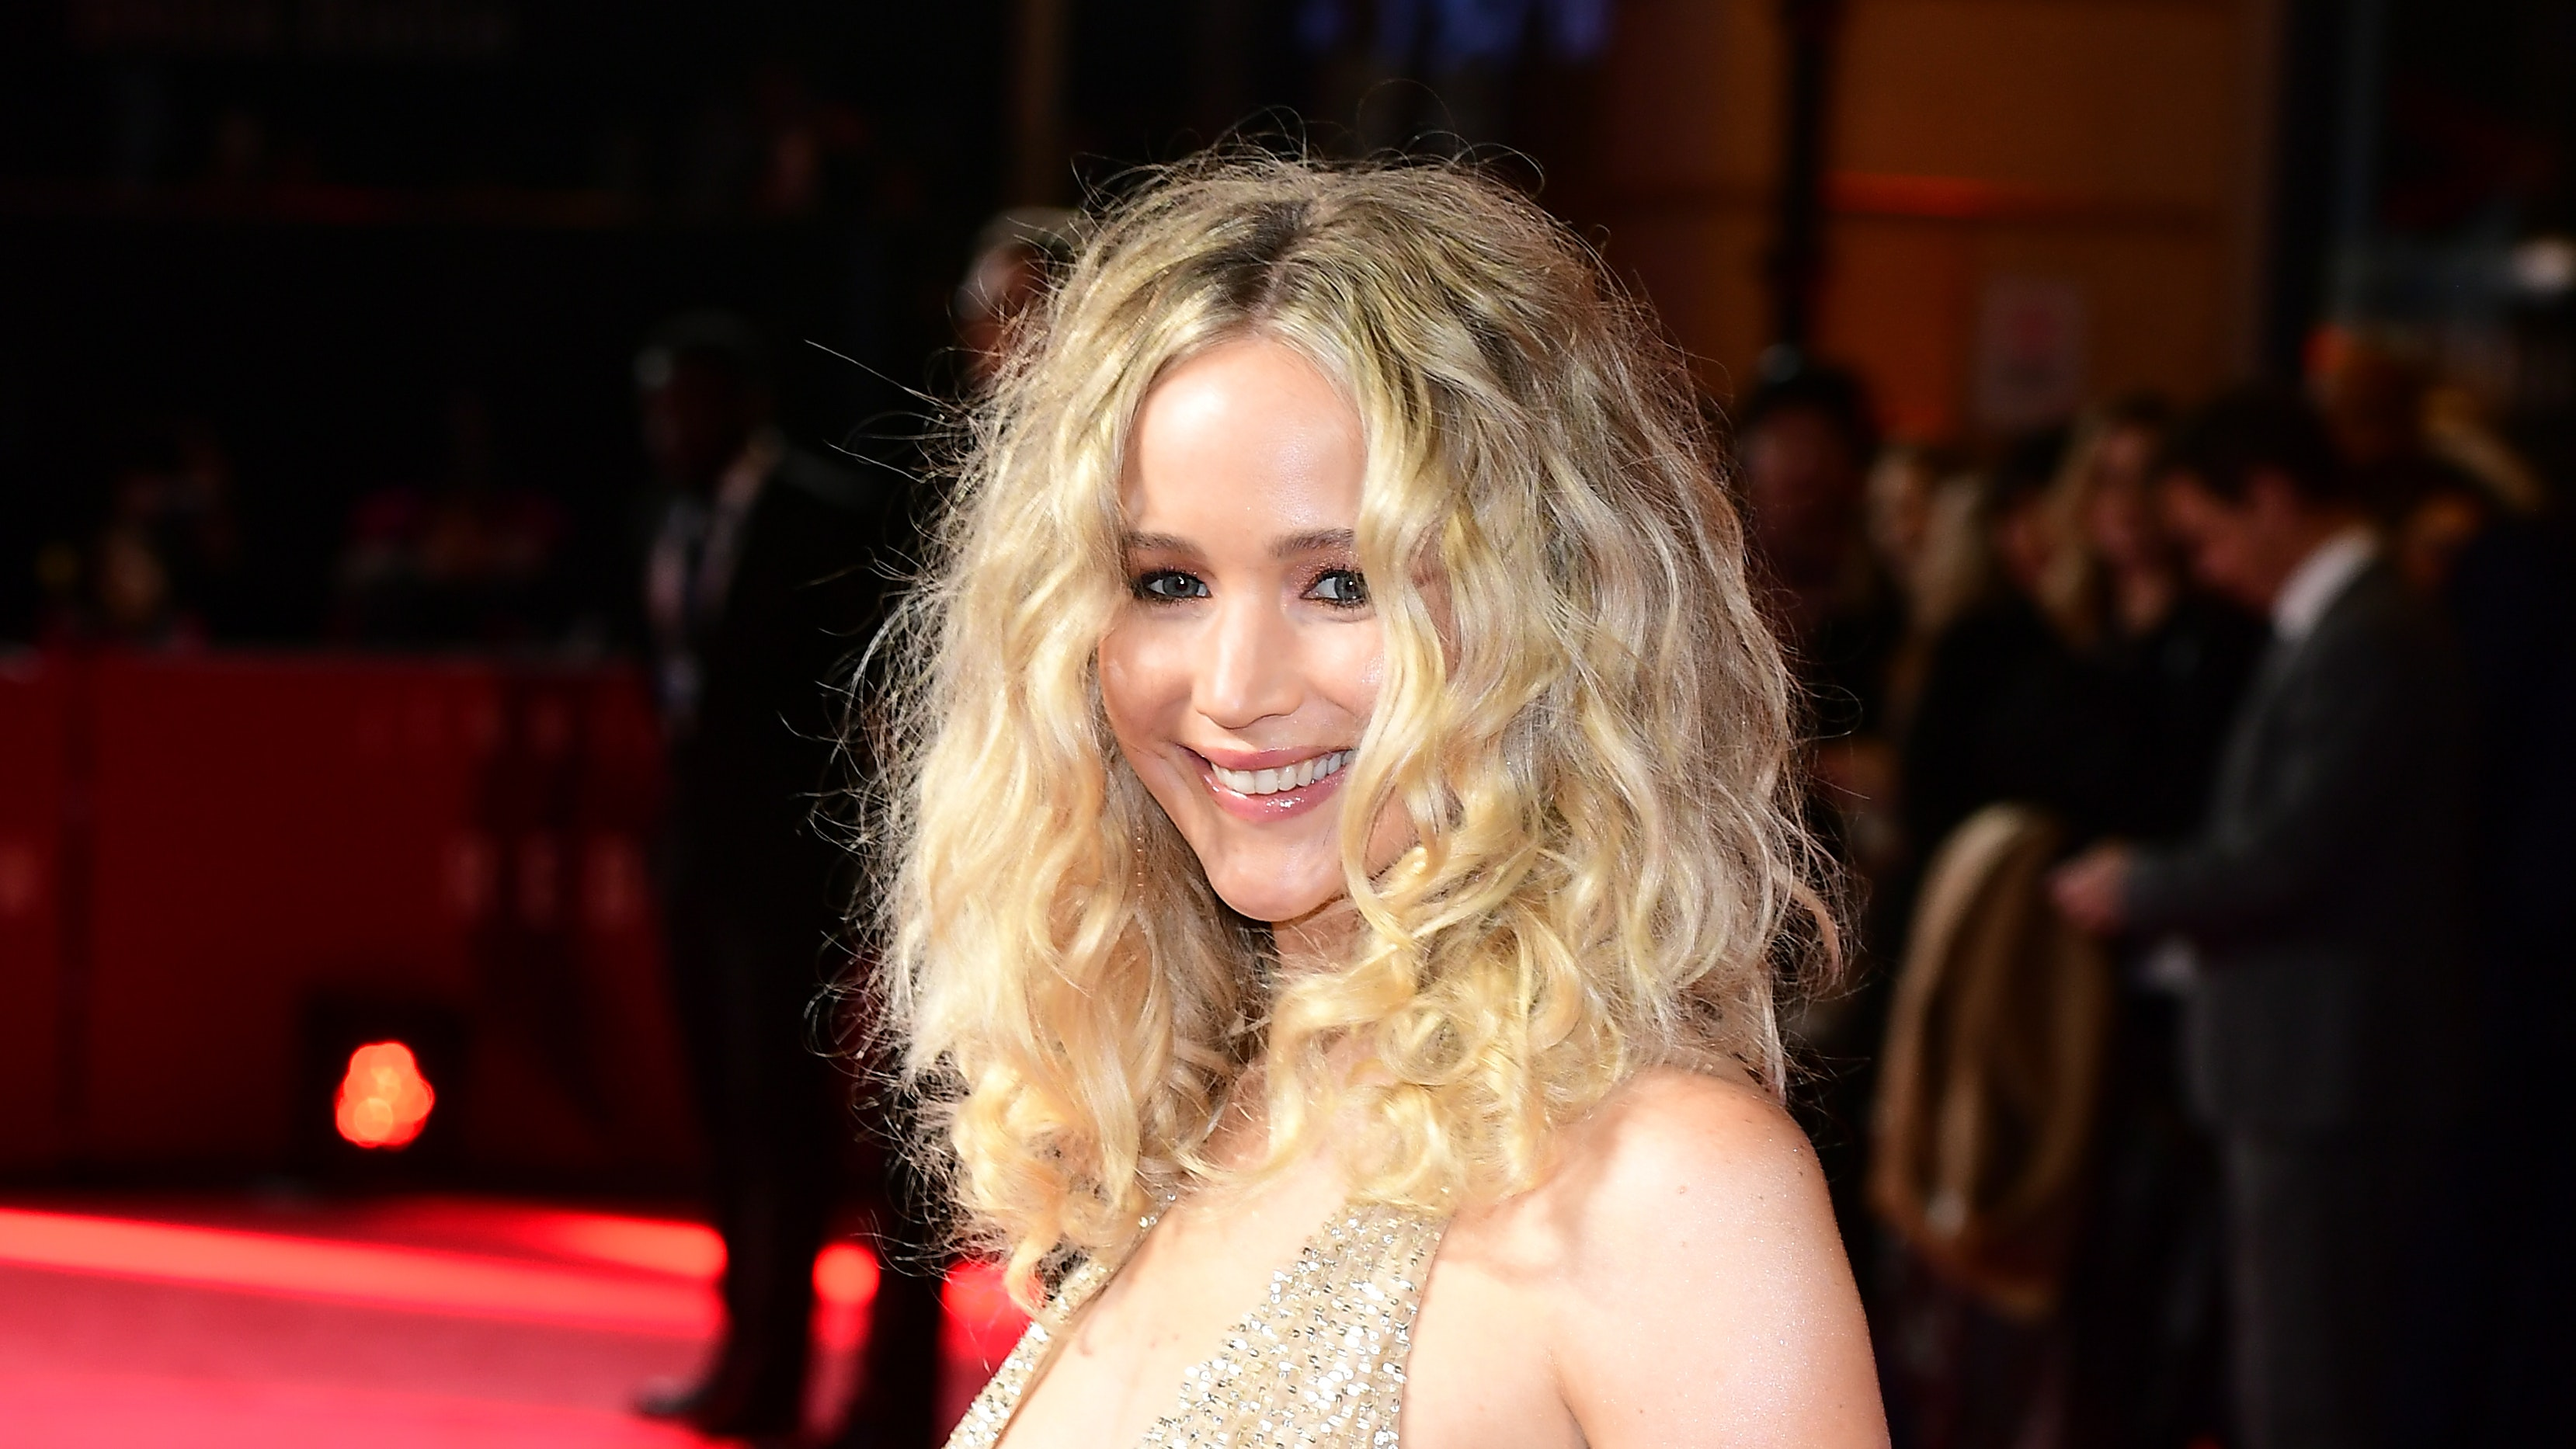 Jennifer Lawrence fires back at 'utterly ridiculous' criticism of her 'sexist' dress